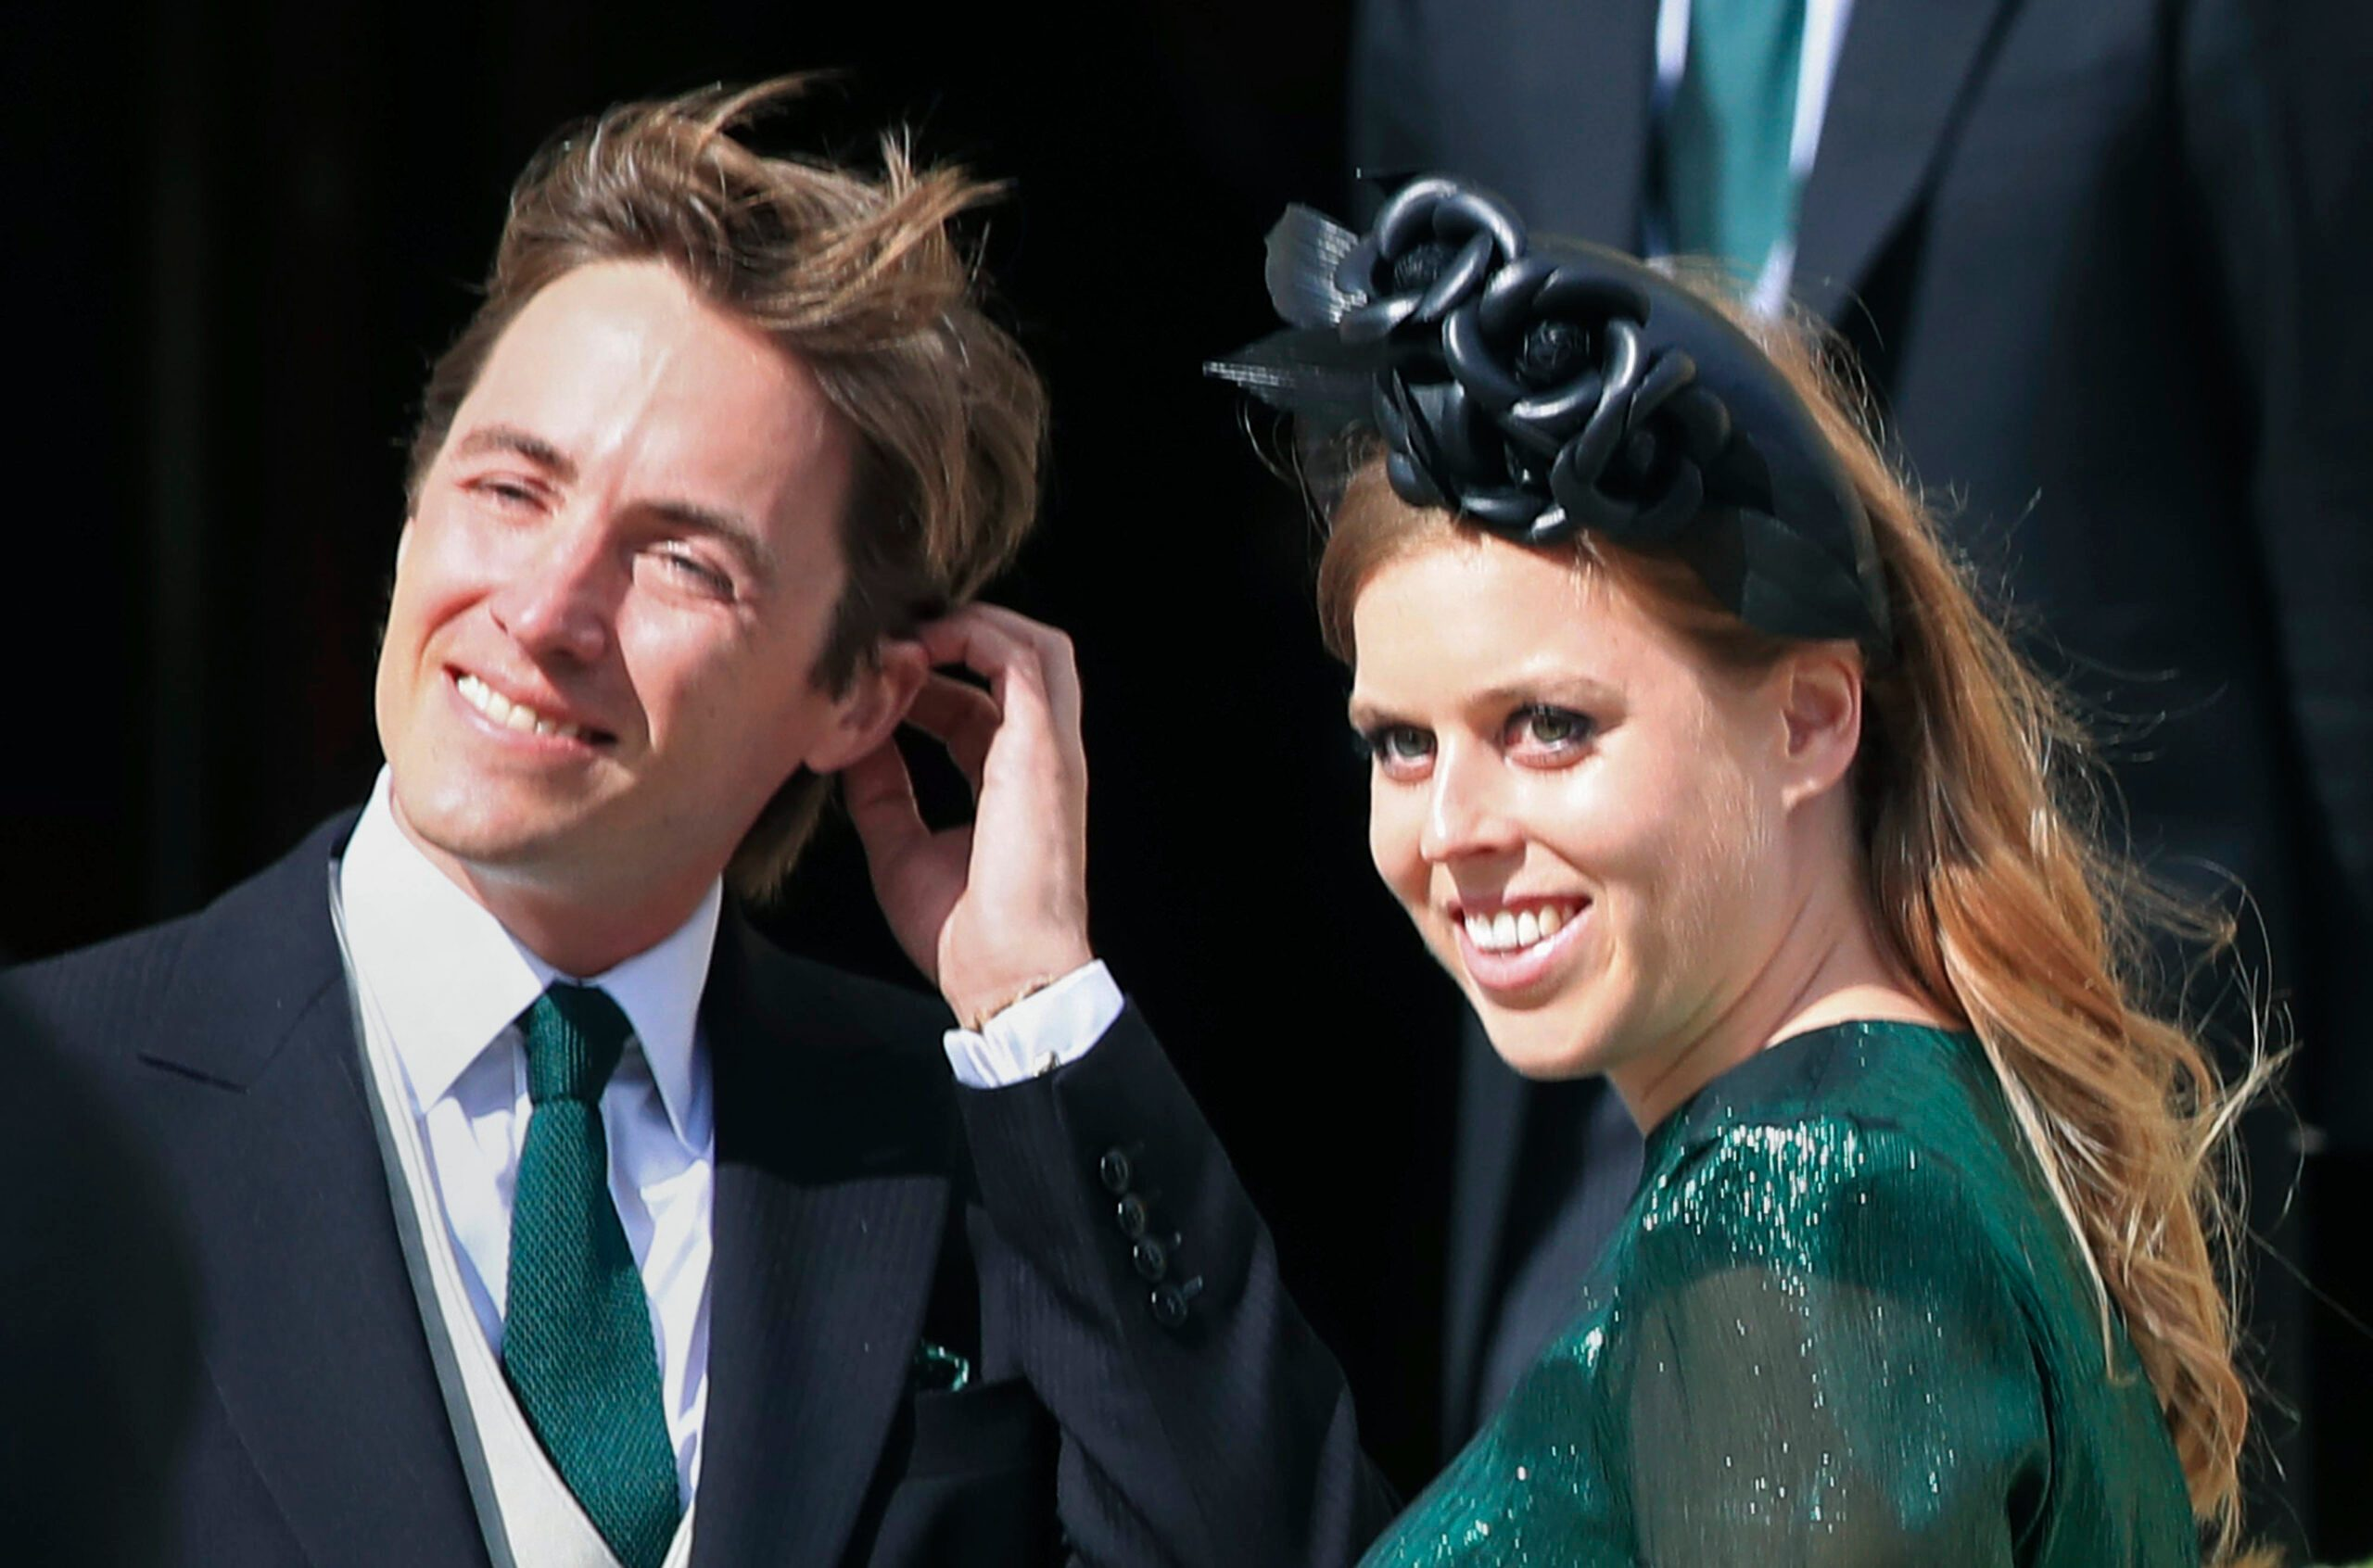 Queen's Granddaughter Princess Beatrice Expecting a Baby